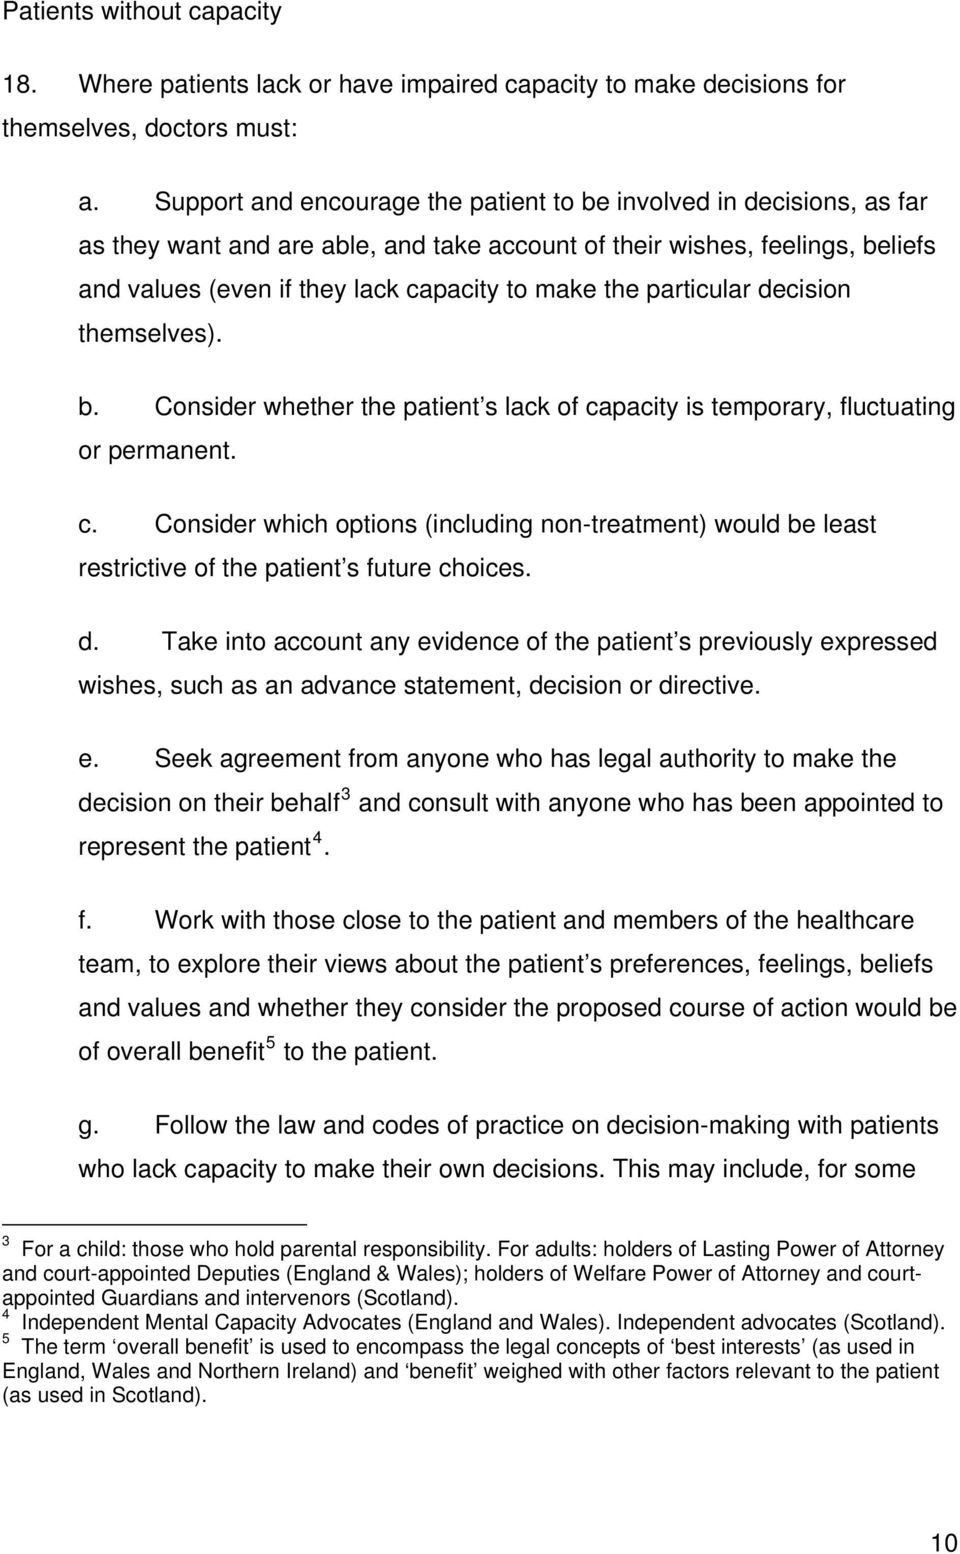 particular decision themselves). b. Consider whether the patient s lack of capacity is temporary, fluctuating or permanent. c. Consider which options (including non-treatment) would be least restrictive of the patient s future choices.